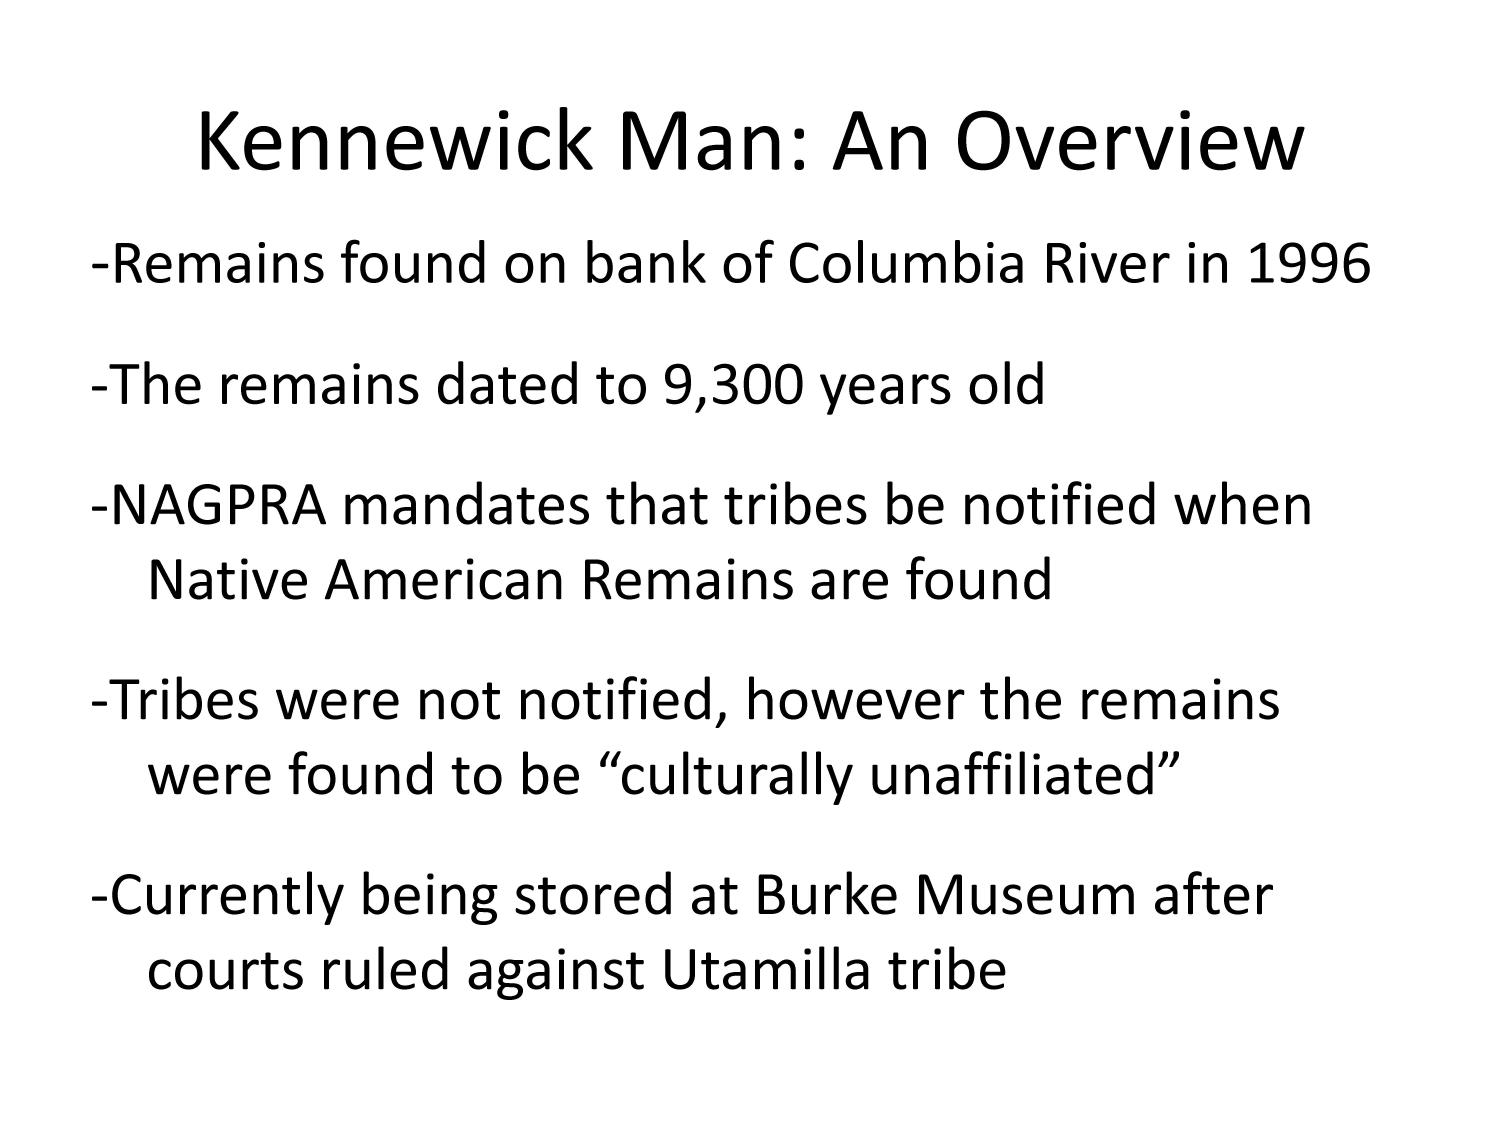 kennewick man and the native american graves The saga of the kennewick man, a prehistoric man who researchers eventually determined had the closest dna match to native american tribes, began when his remains surfaced on the banks of the columbia river, in kennewick, washington, in now-distant 1996.